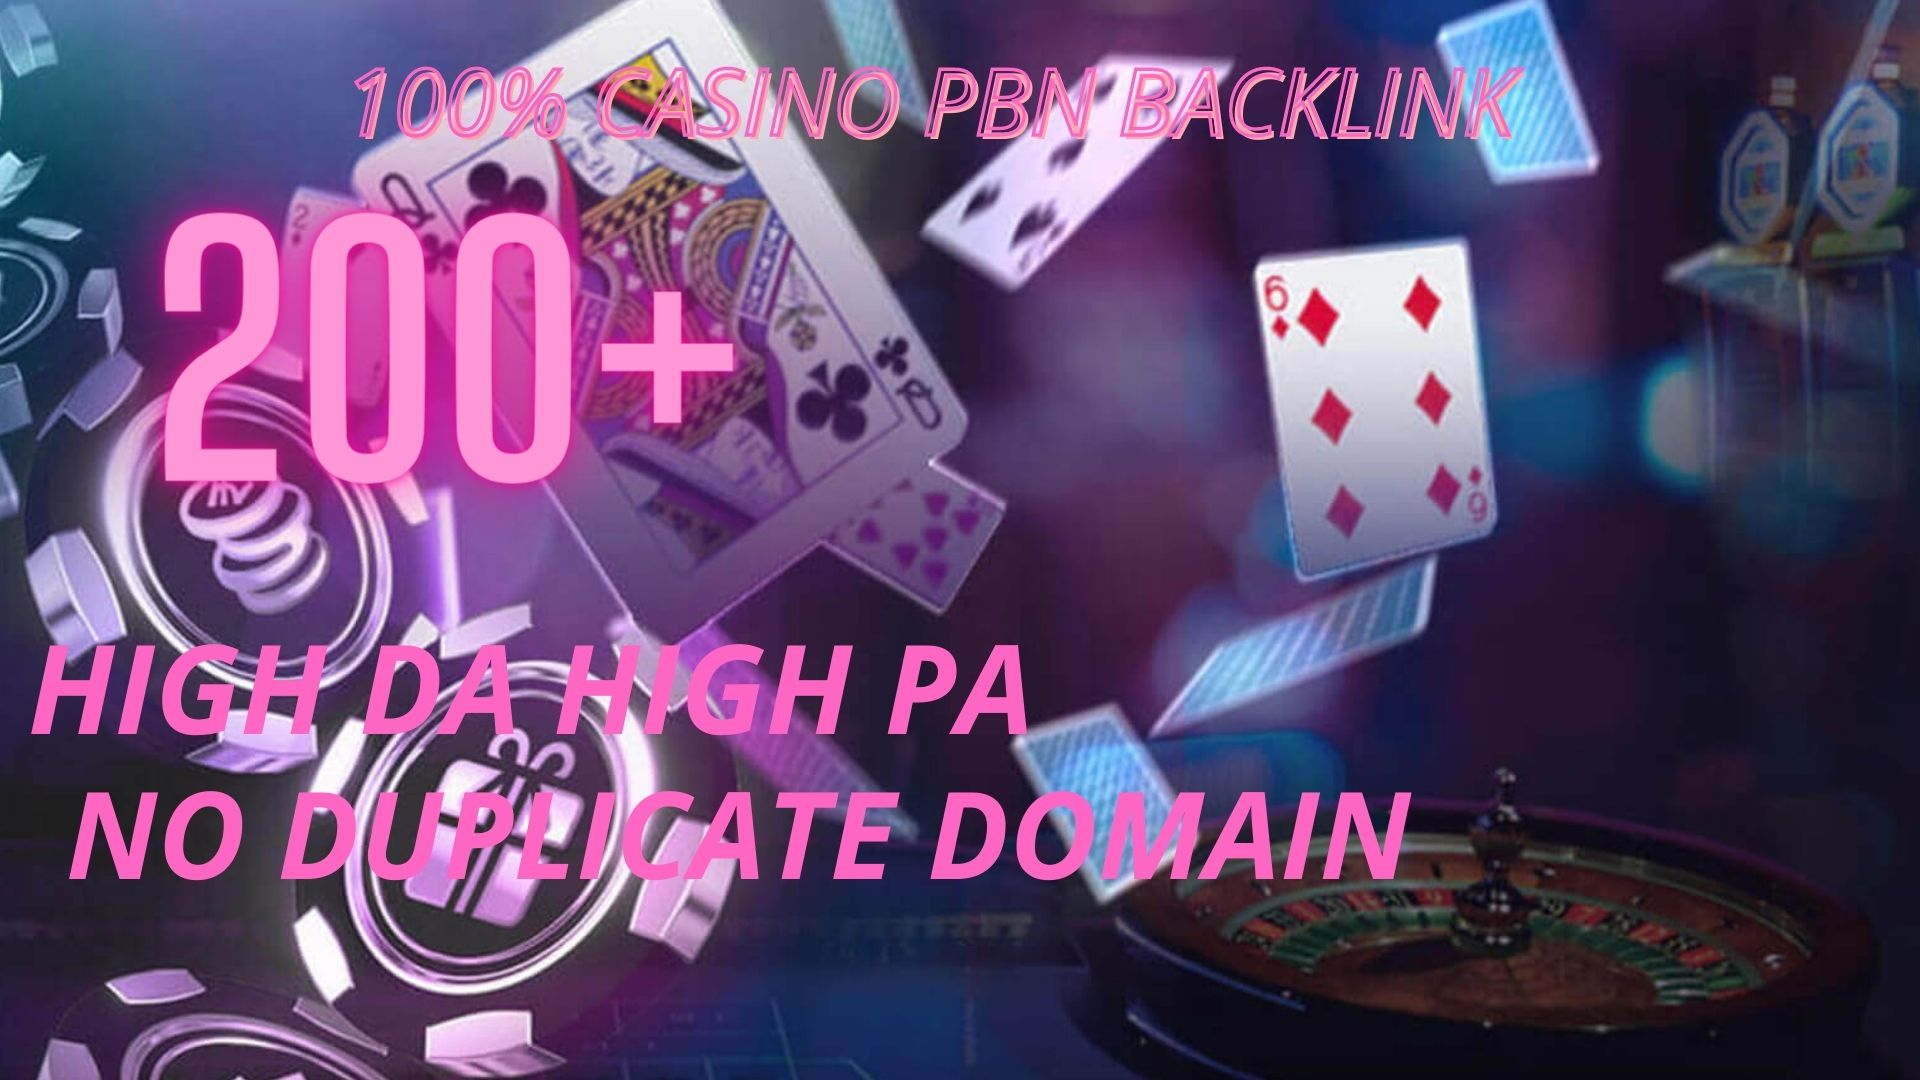 200+ casino pbn backlink on your home page with high da high pa on your website